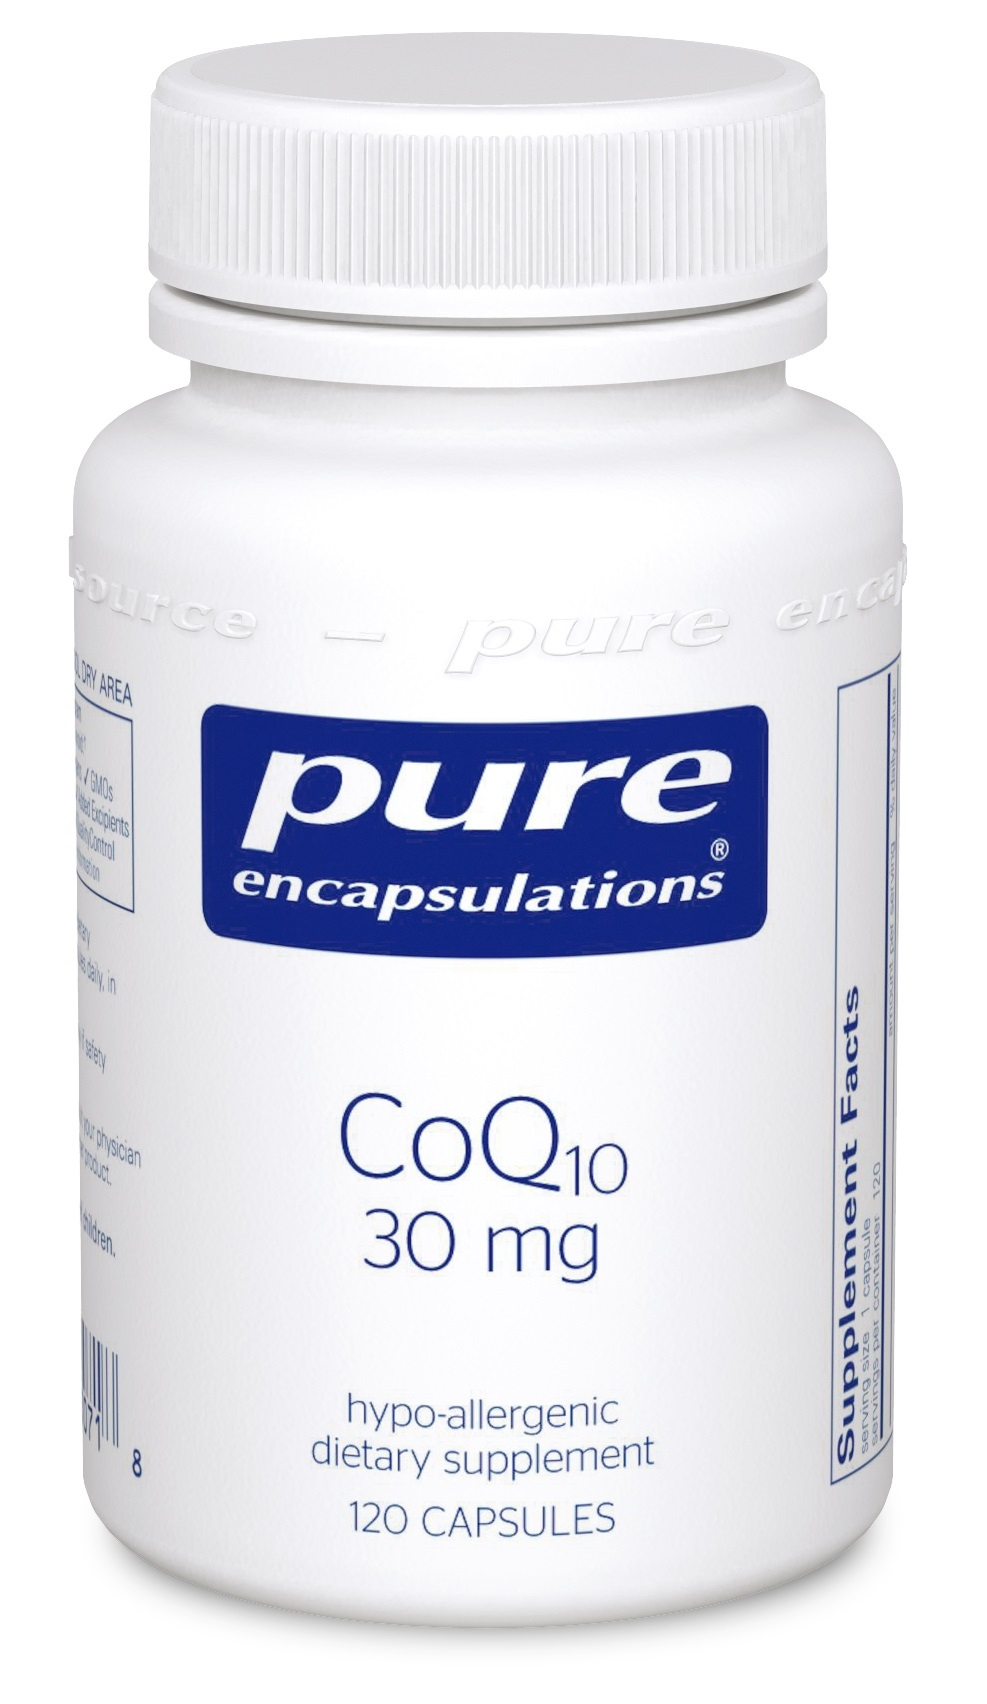 Pure Encapsulations CoQ10 30 mg